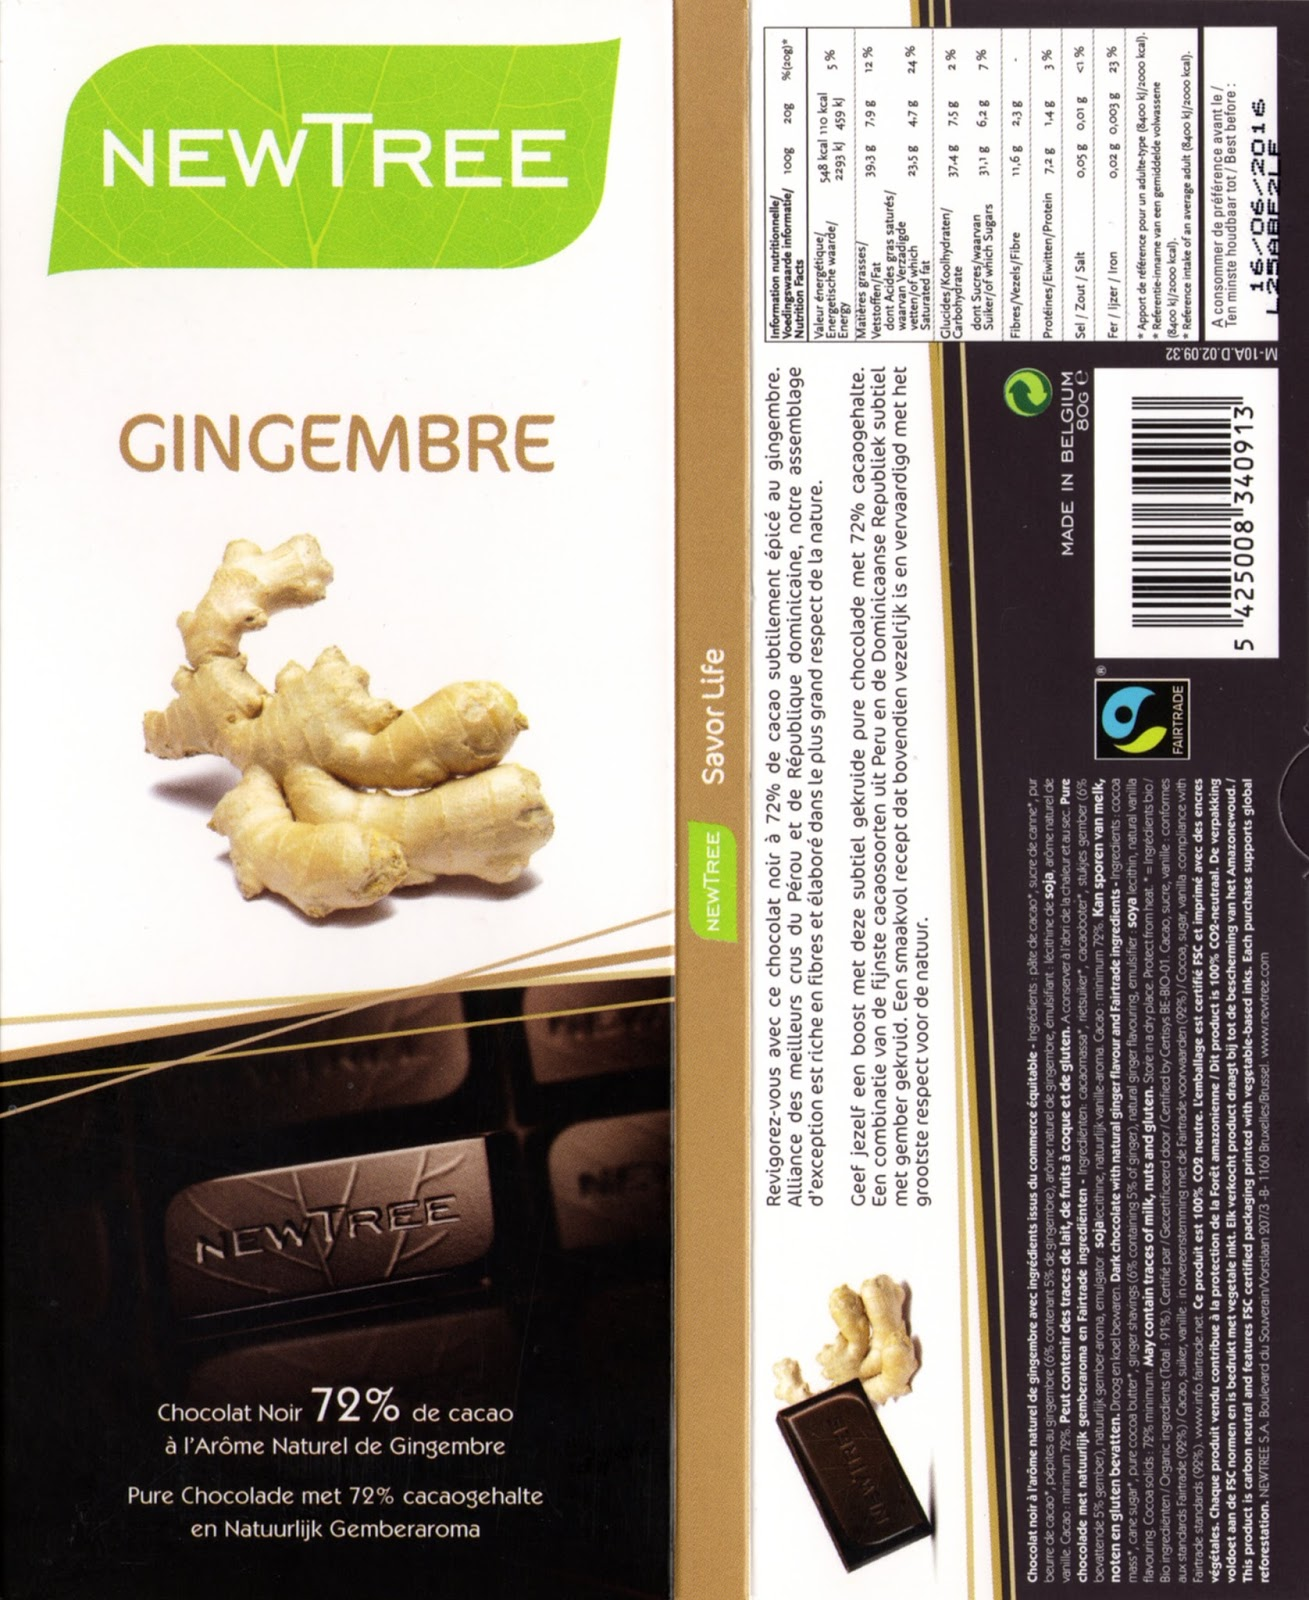 tablette de chocolat noir gourmand newtree gingembre 72